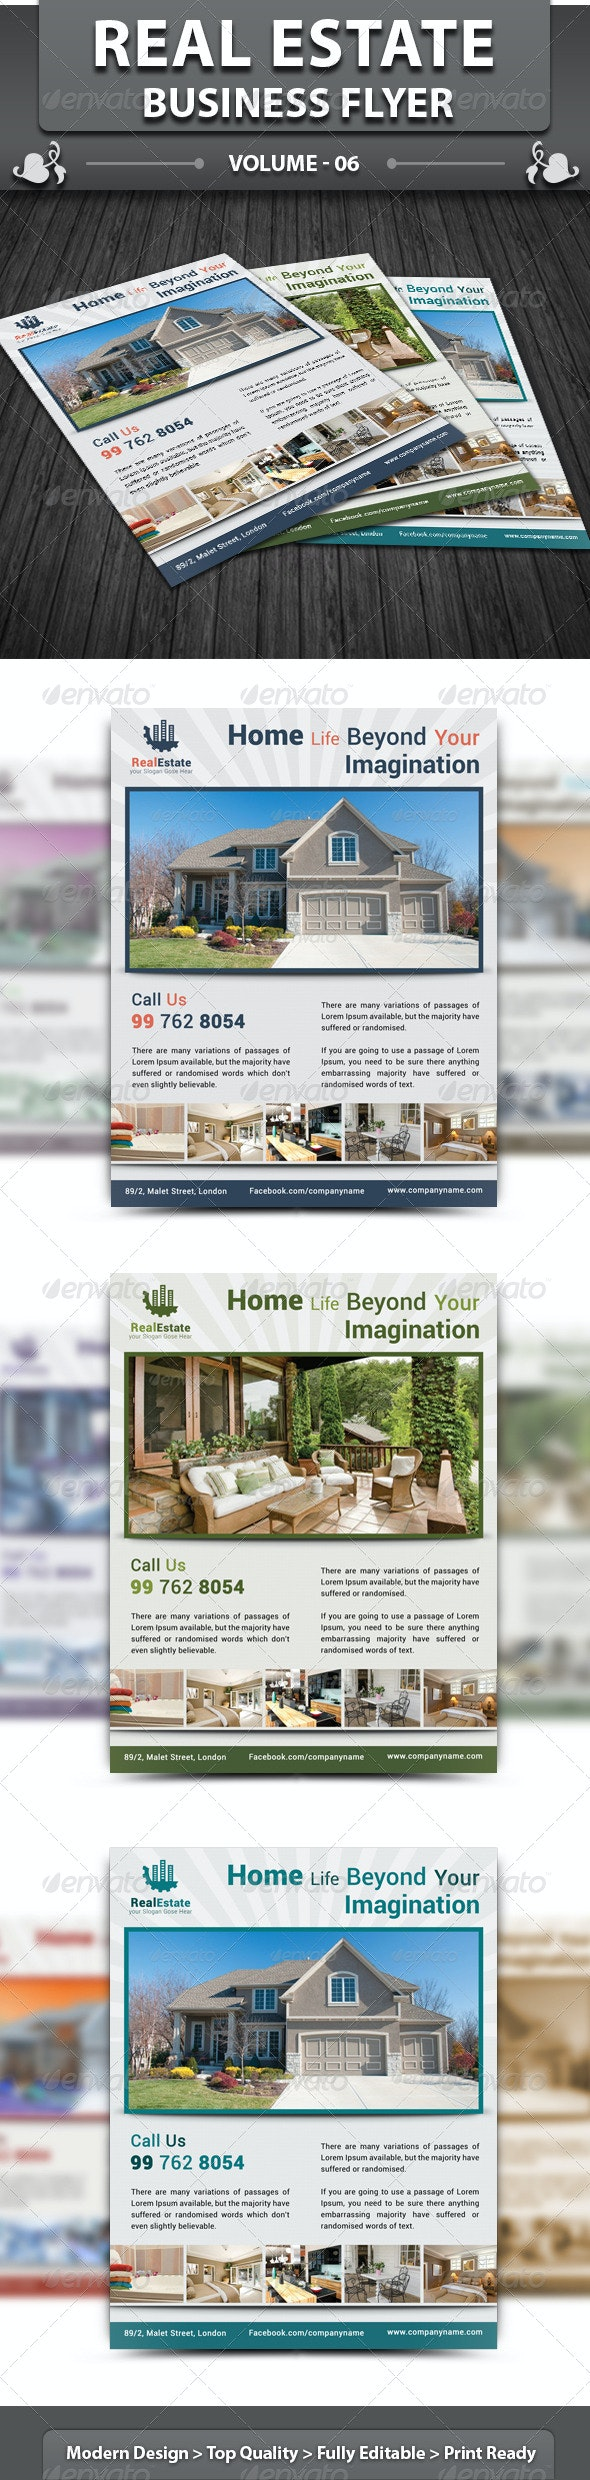 Real Estate Business Flyer | Volume 6 - Corporate Flyers